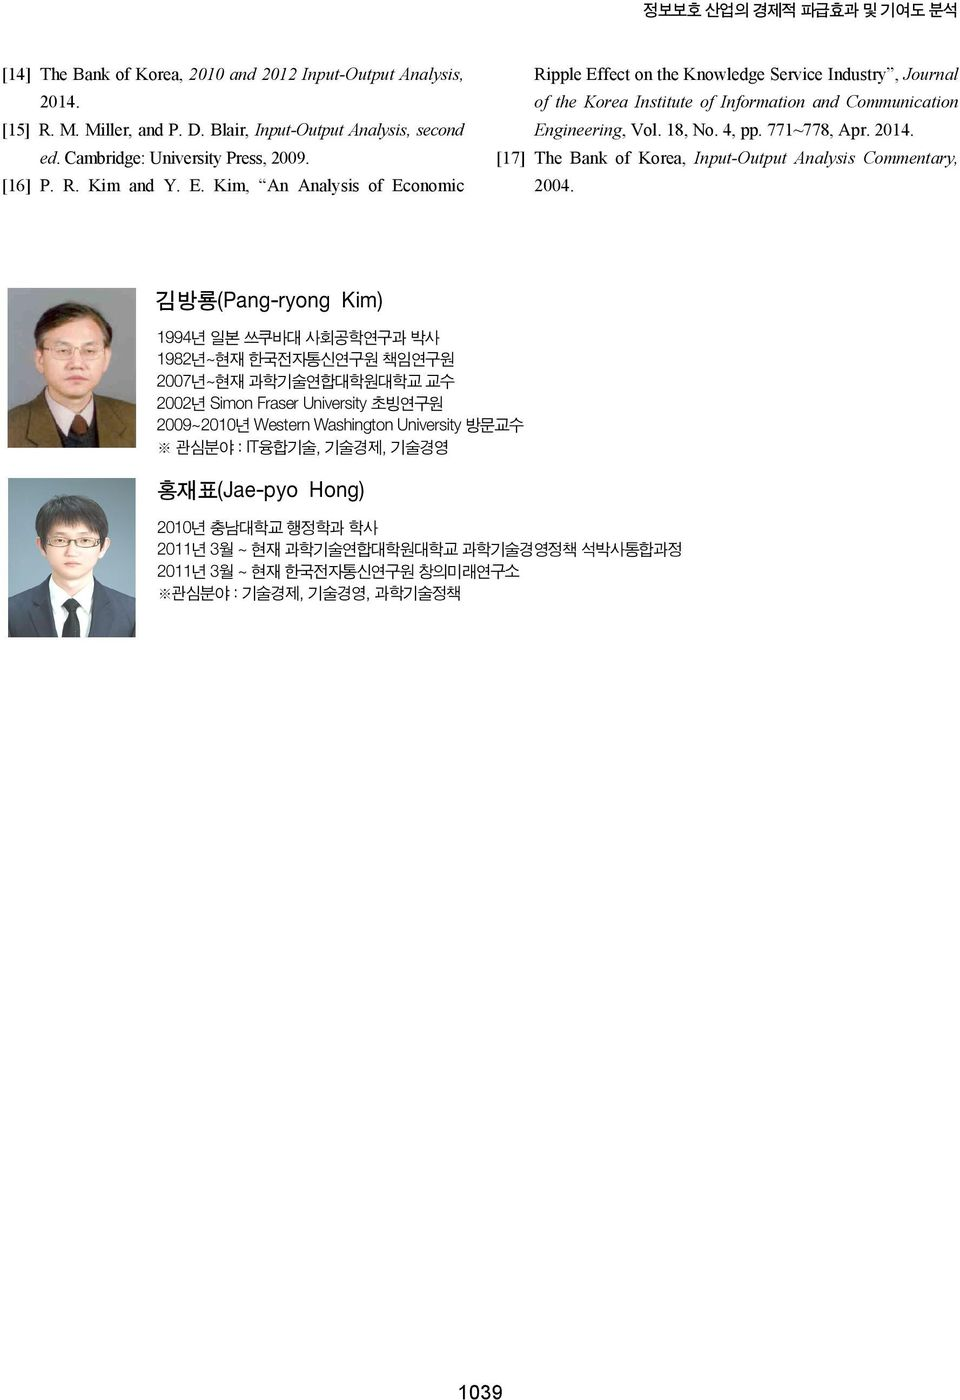 771~778, Apr. 2014. [17] The Bank of Korea, Input-Output Analysis Commentary, 2004.